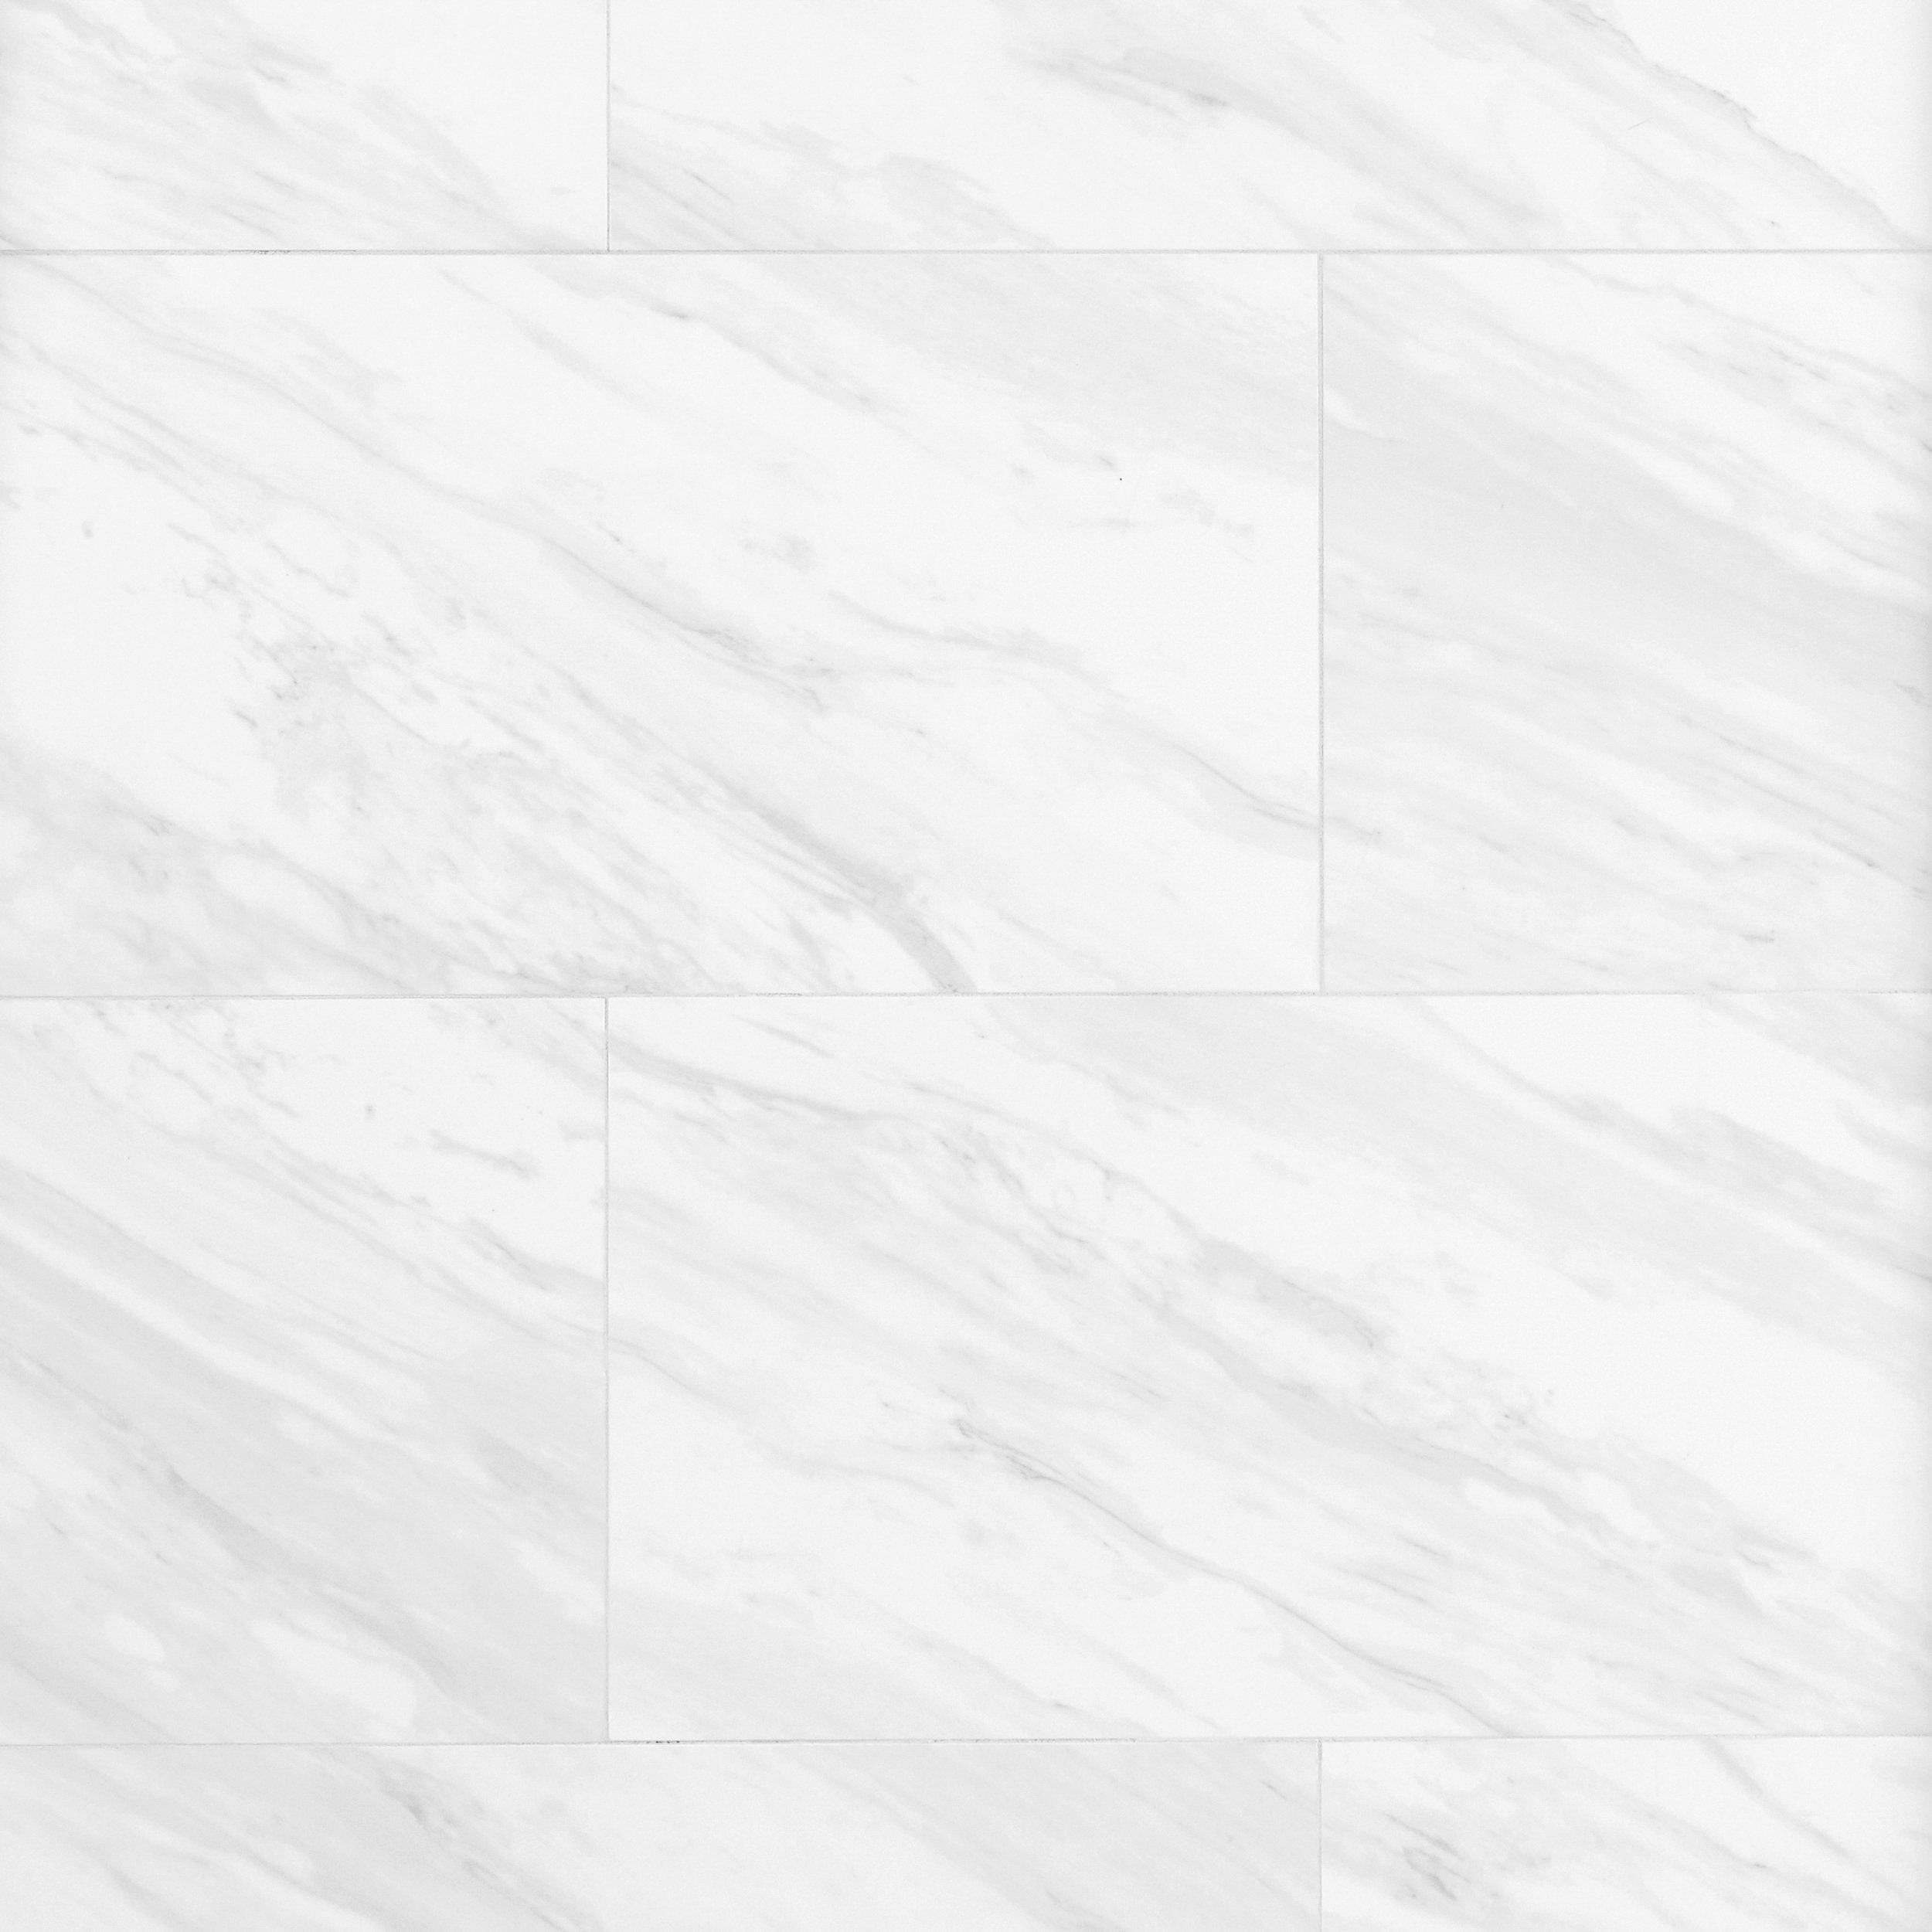 white porcelain tile floor. Volakas Plus Matte Porcelain Tile White Porcelain Tile Floor H